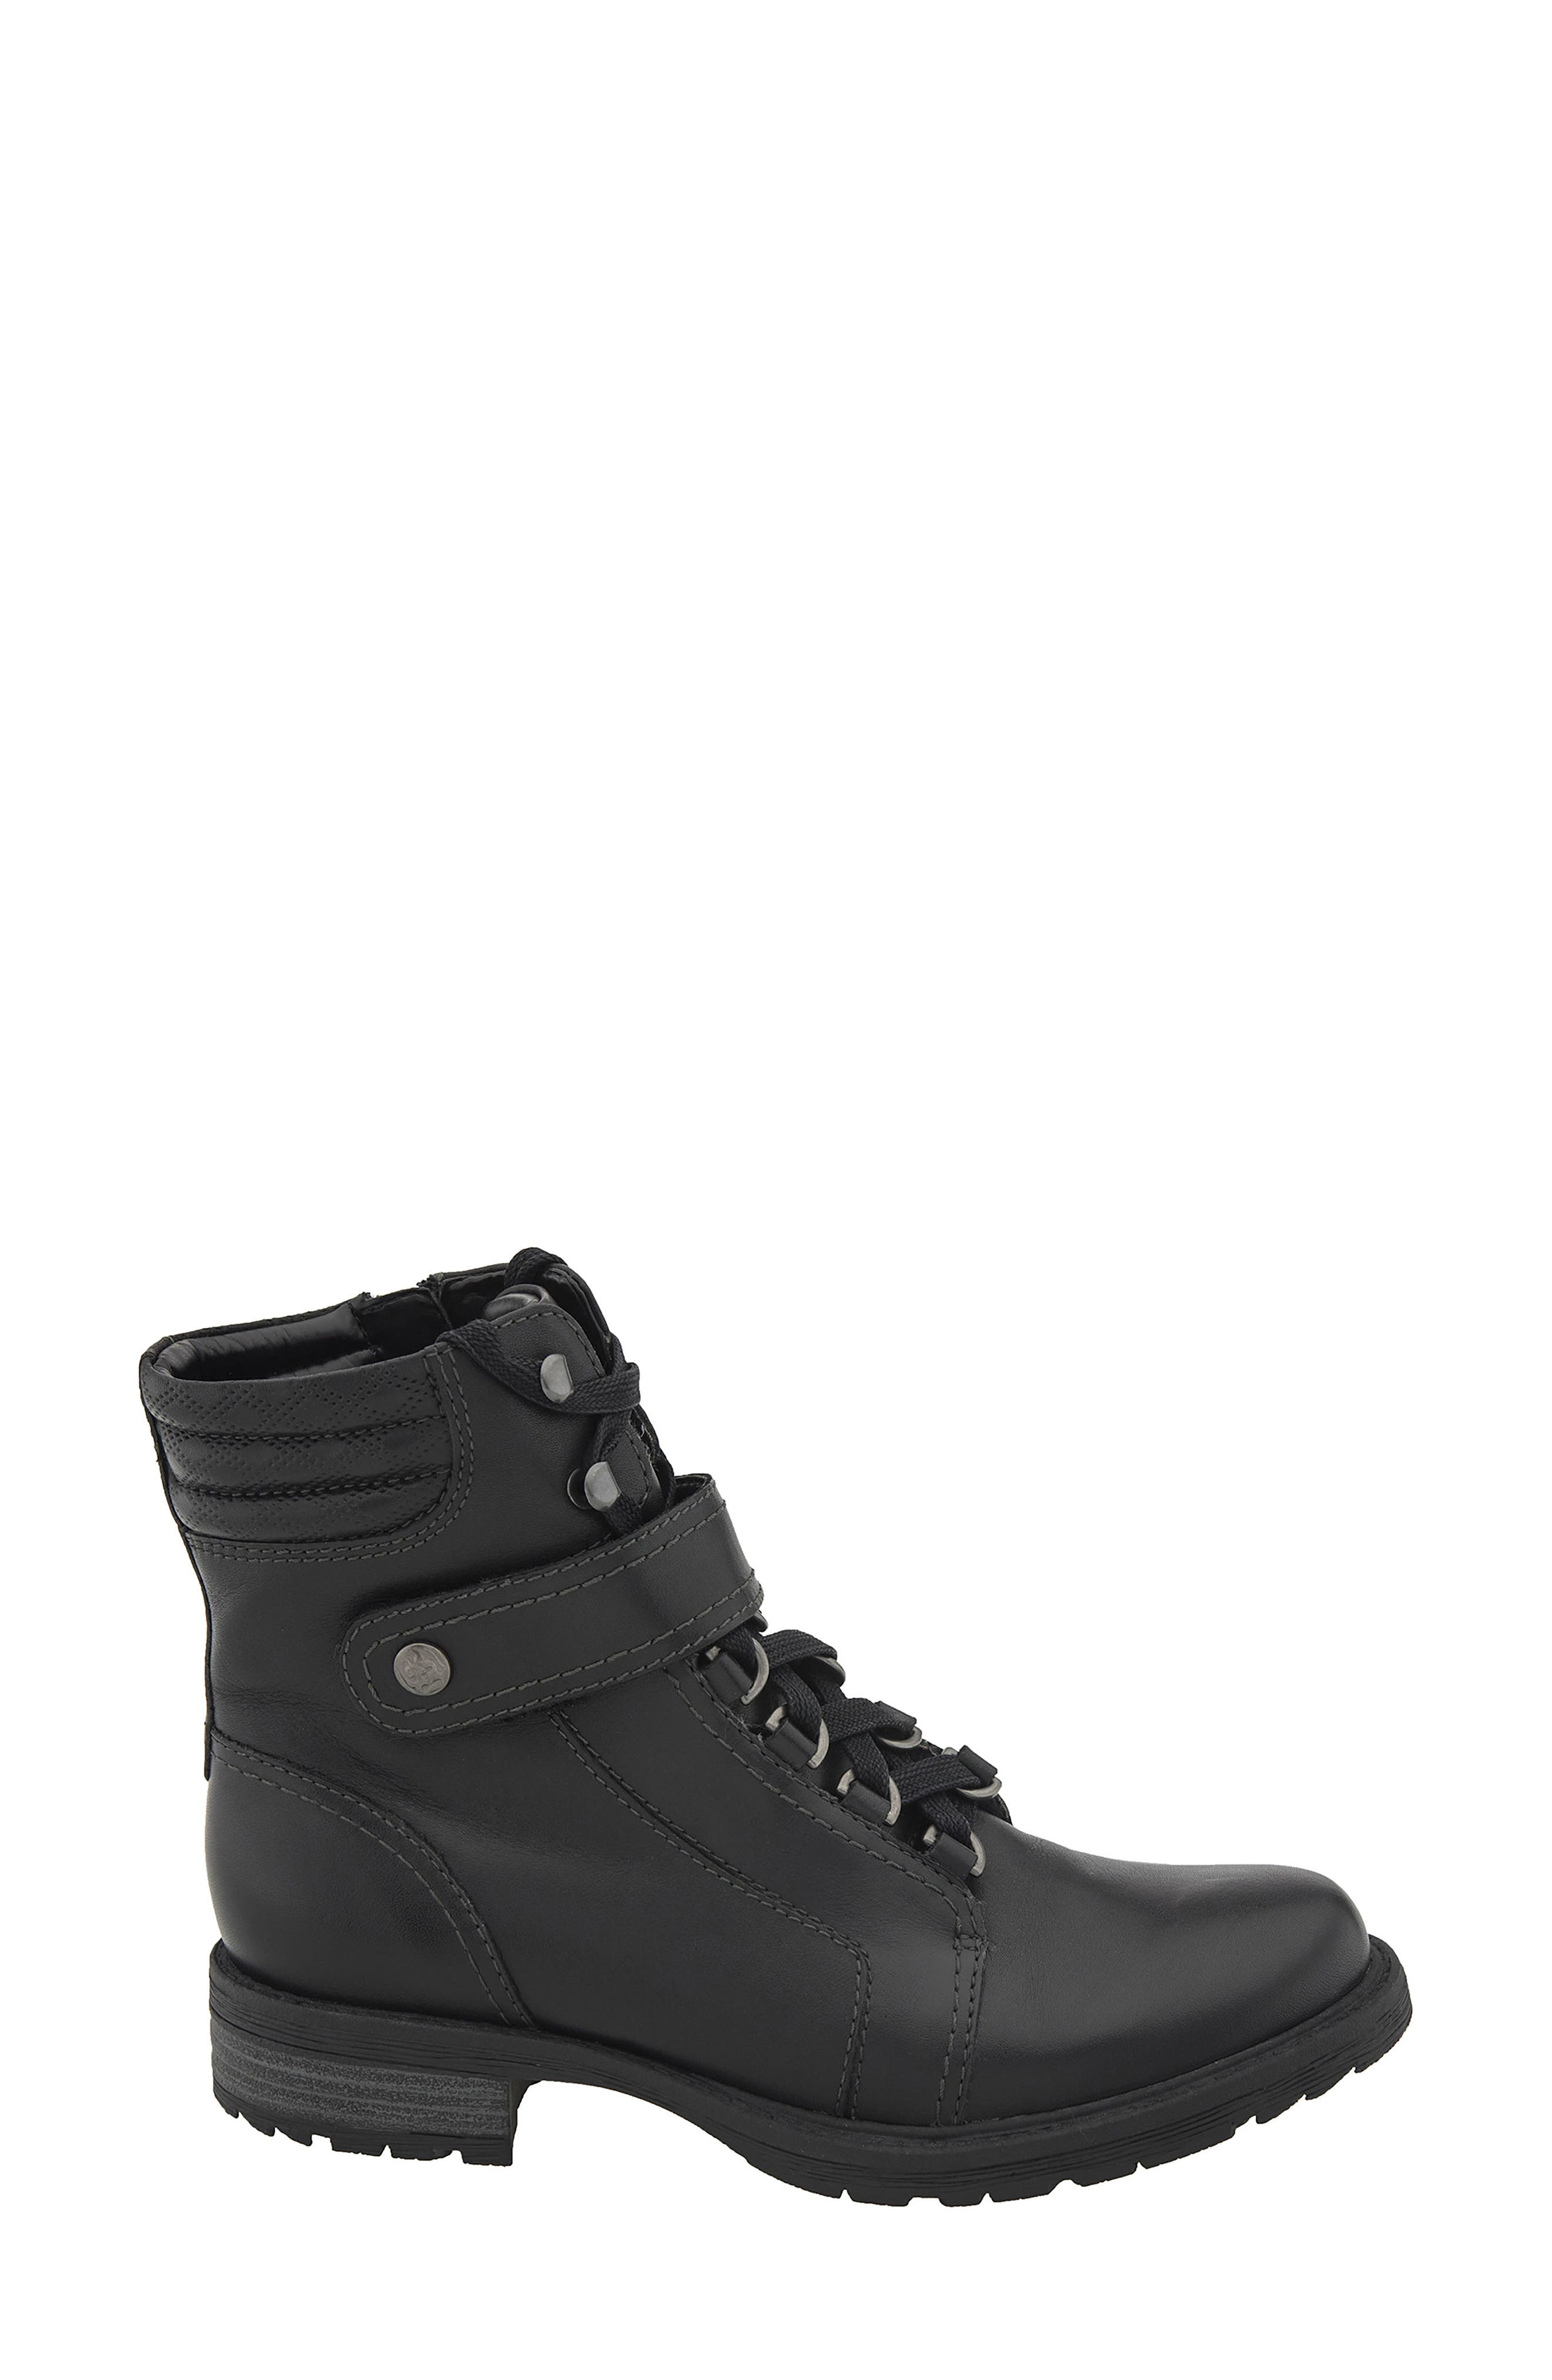 Everest Lace-Up Boot,                             Alternate thumbnail 3, color,                             001